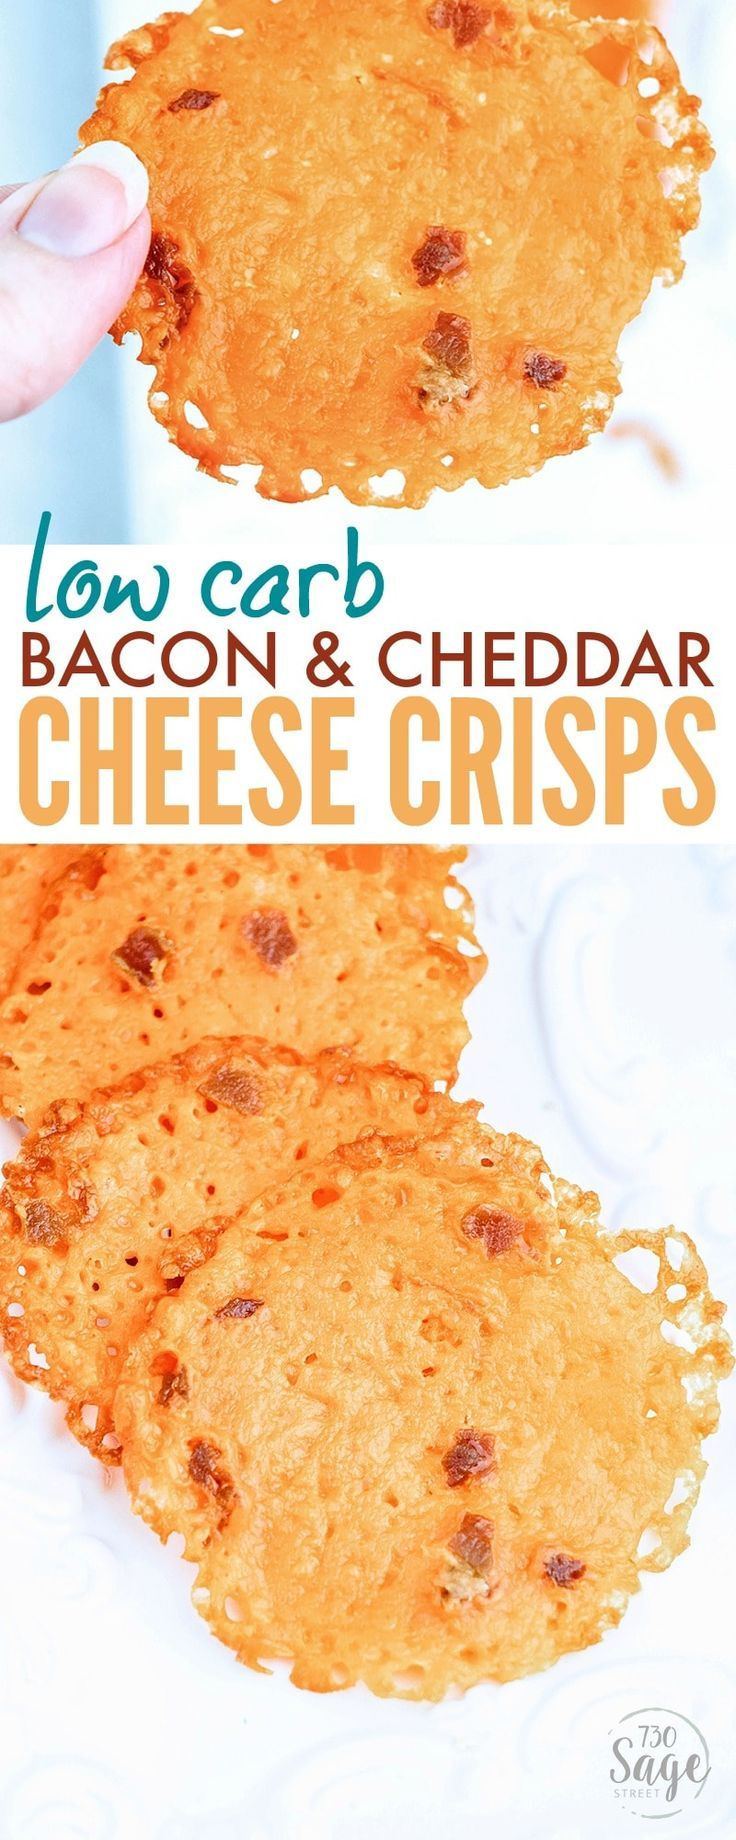 These Low Carb Bacon Cheddar Cheese Crisps make a great quick & easy snack. Crisp like chips, but made of cheese so they are a good fit for ketogenic diets. https://www.730sagestreet.com/low-carb-bacon-cheddar-cheese-crisps/ (Cheddar Cheese Snacks)